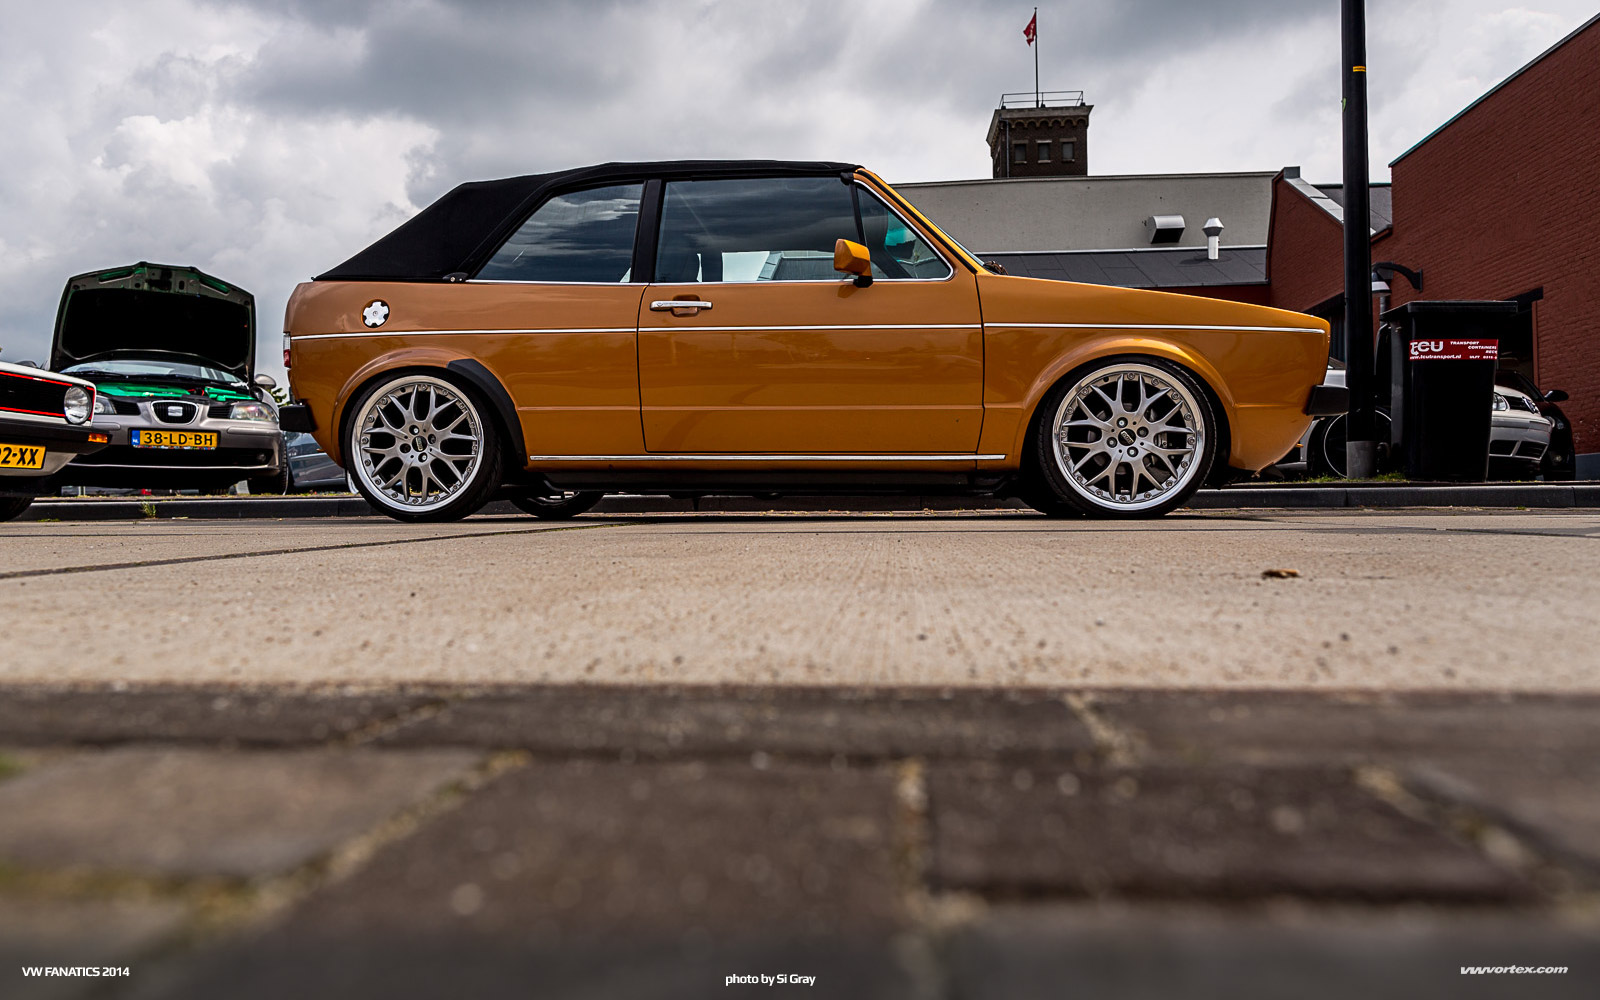 VWFanatics-2014-Si-Gray-439